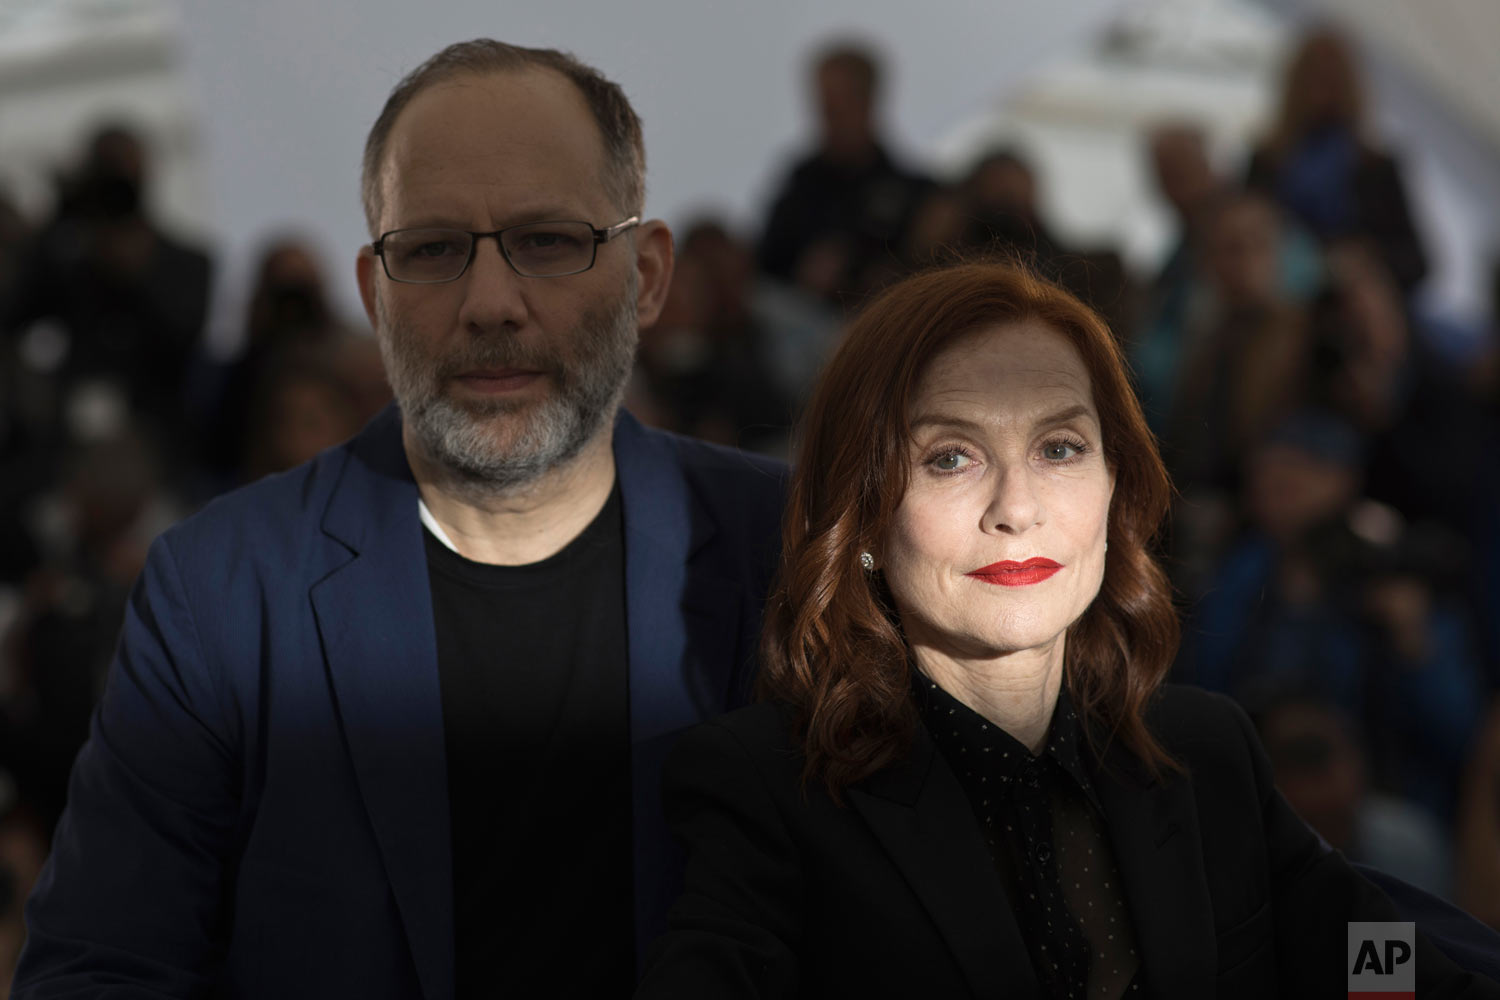 Director Ira Sachs, left, and actress Isabelle Huppert pose for photographers at the photo call for the film 'Frankie' at the 72nd international film festival, Cannes, southern France, May 21, 2019. (AP Photo/Petros Giannakouris)